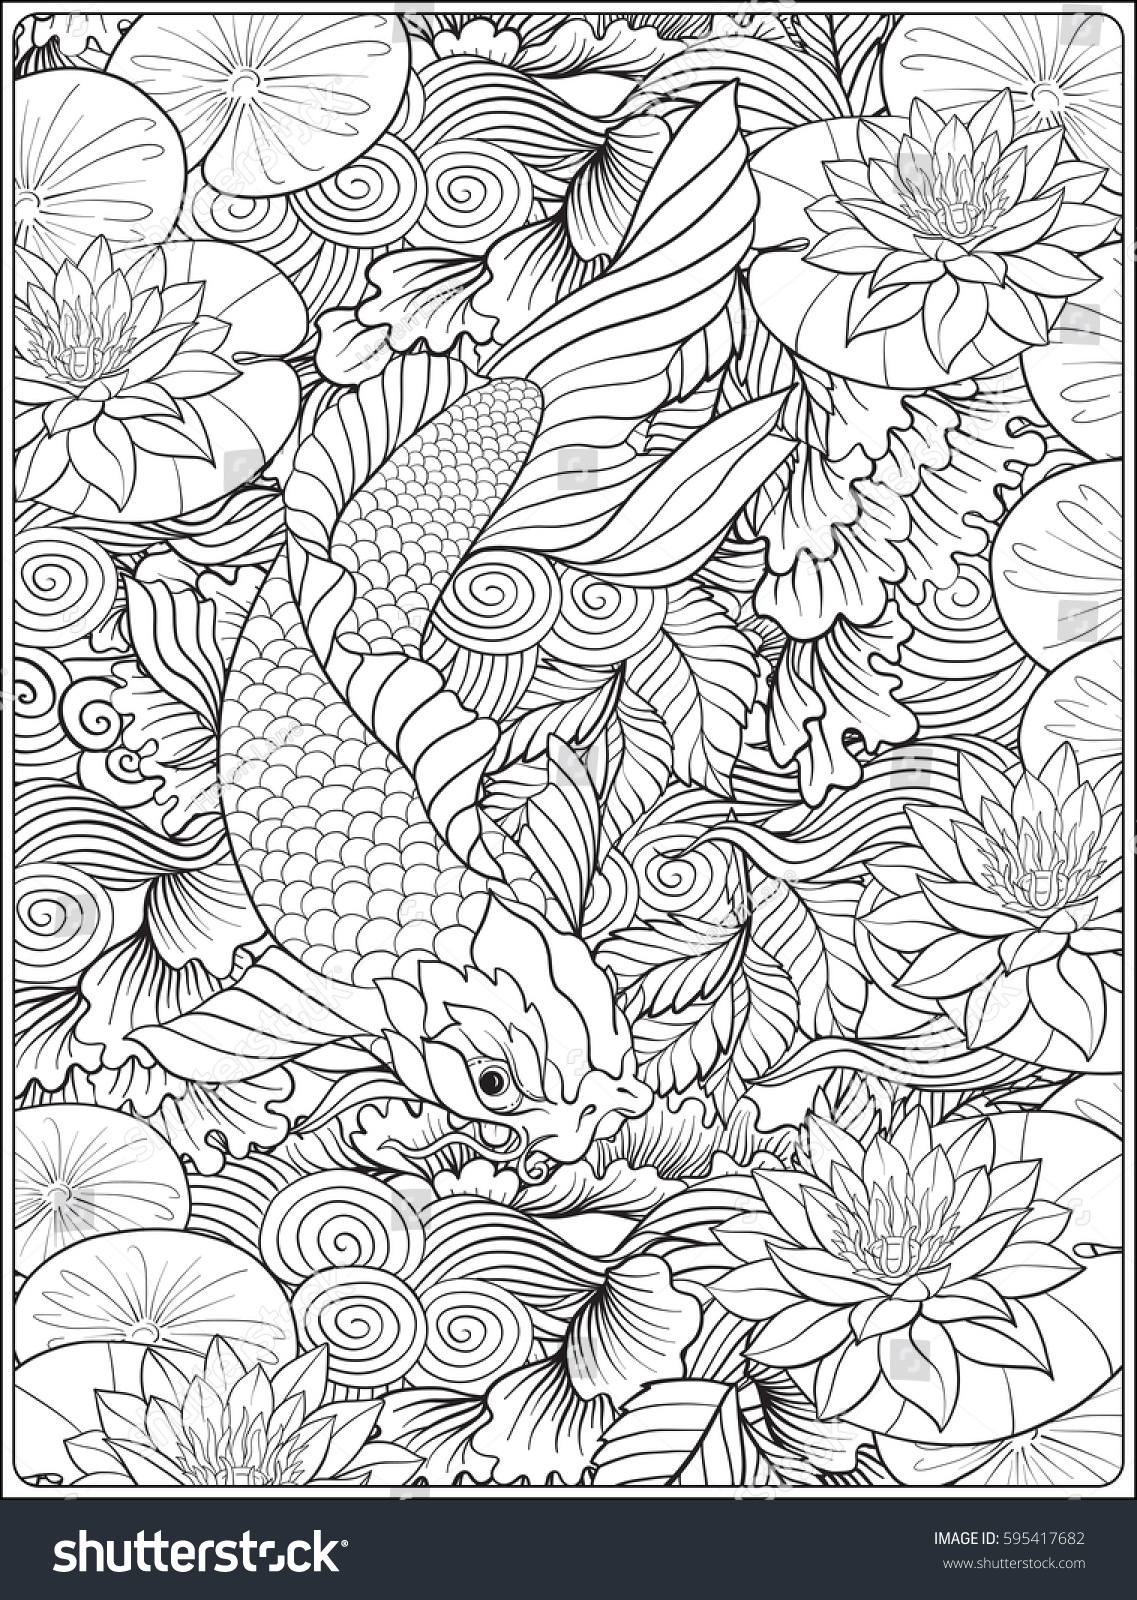 Lotus designs coloring book - Japanese Carp In Lake With Lotus Flowers Outline Drawing Coloring Page Coloring Book For